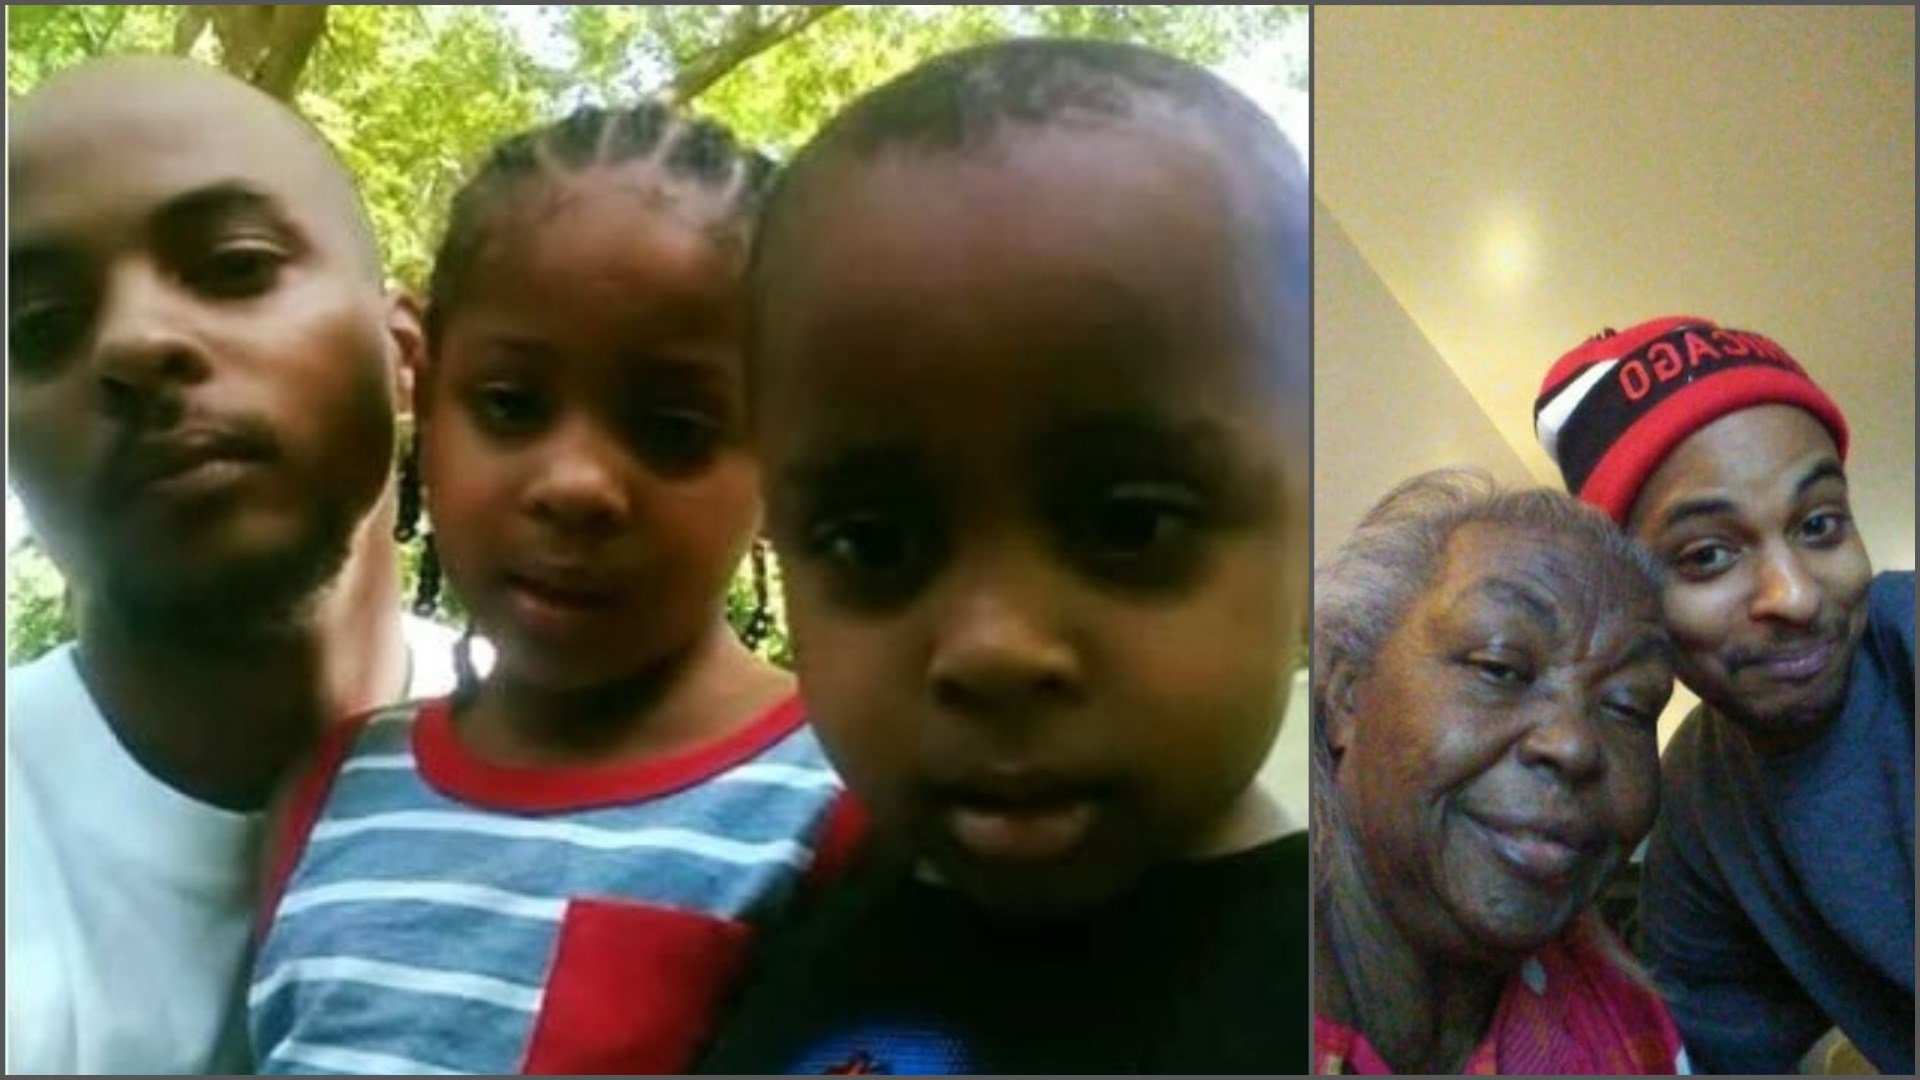 Cleon Baker, had two young children (Source: Baker family via Glendale Police Dept.)